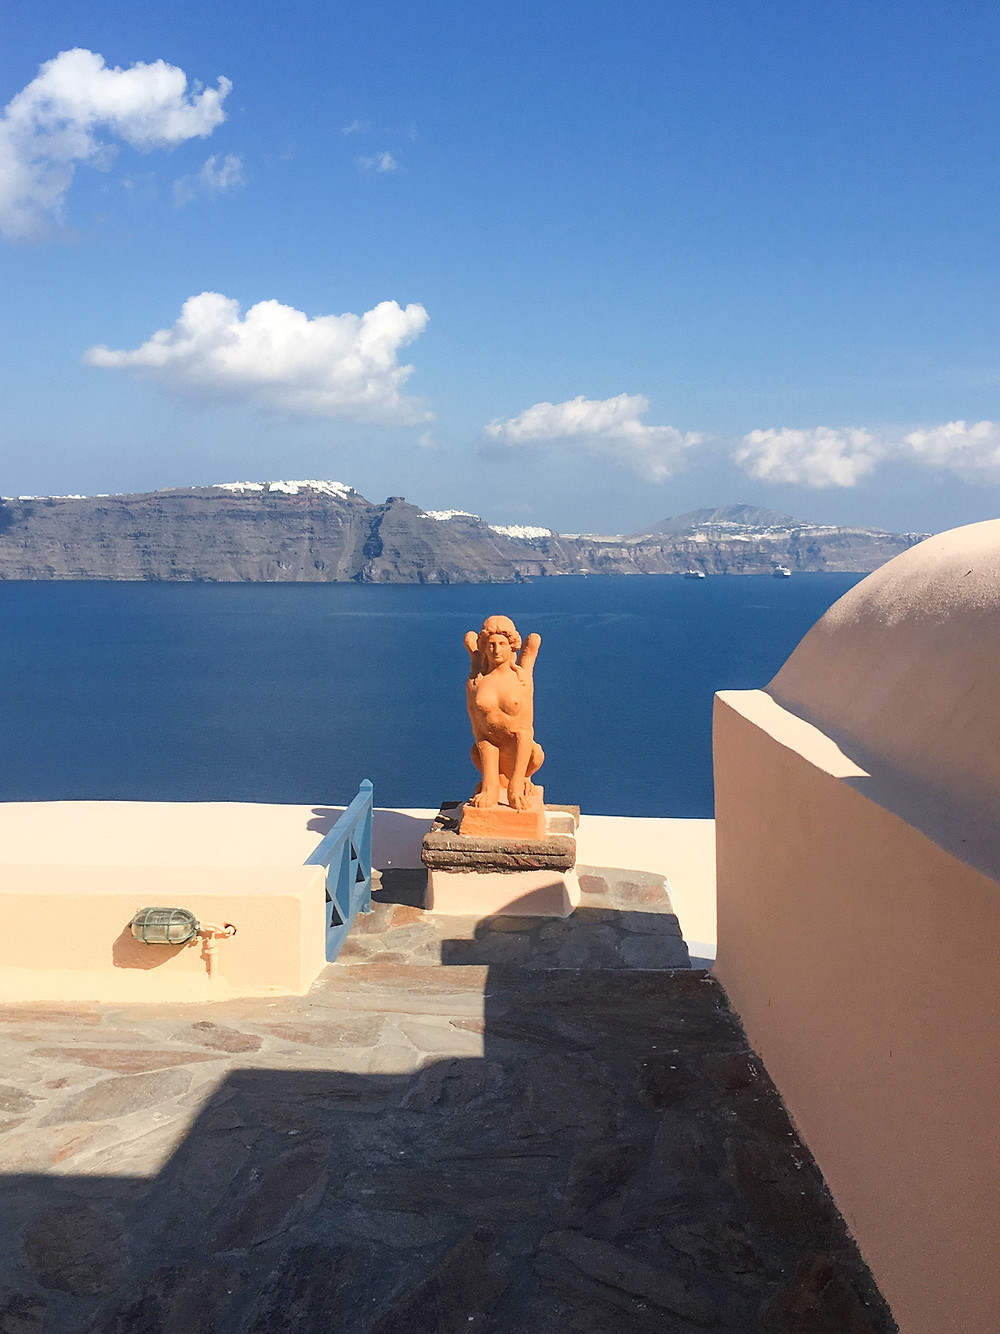 An orange seated sphinx statue in front of a deep blue sea and the cliffs of Santorini island on the other side